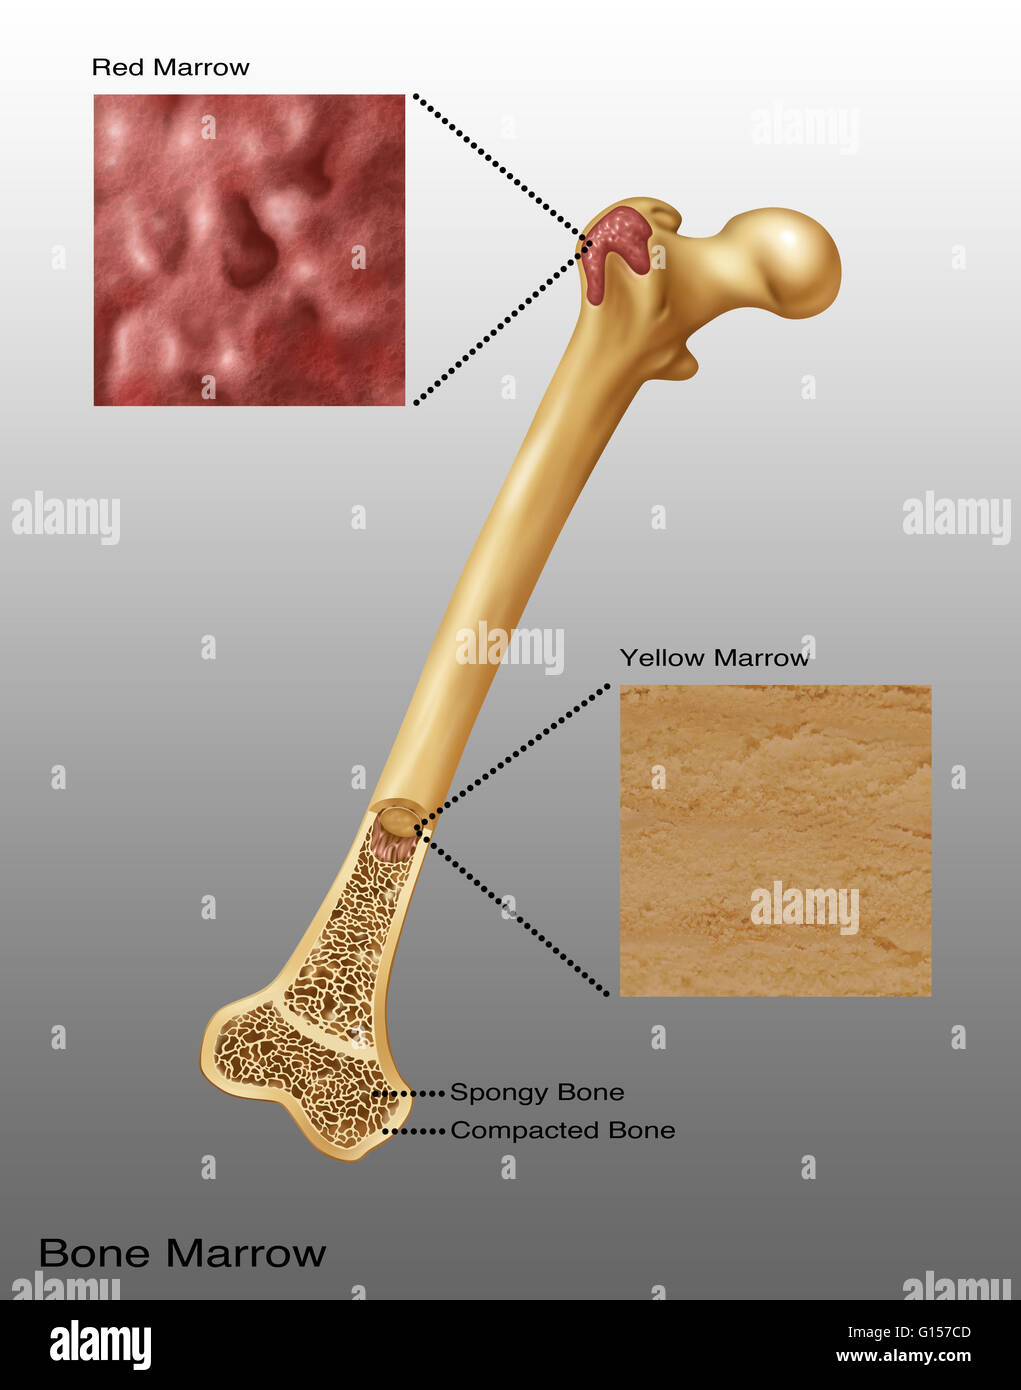 hight resolution of illustration of bone marrow top diagram shows red bone marrow bottom diagram shows yellow marrow spongy bone and compacted bone also visible